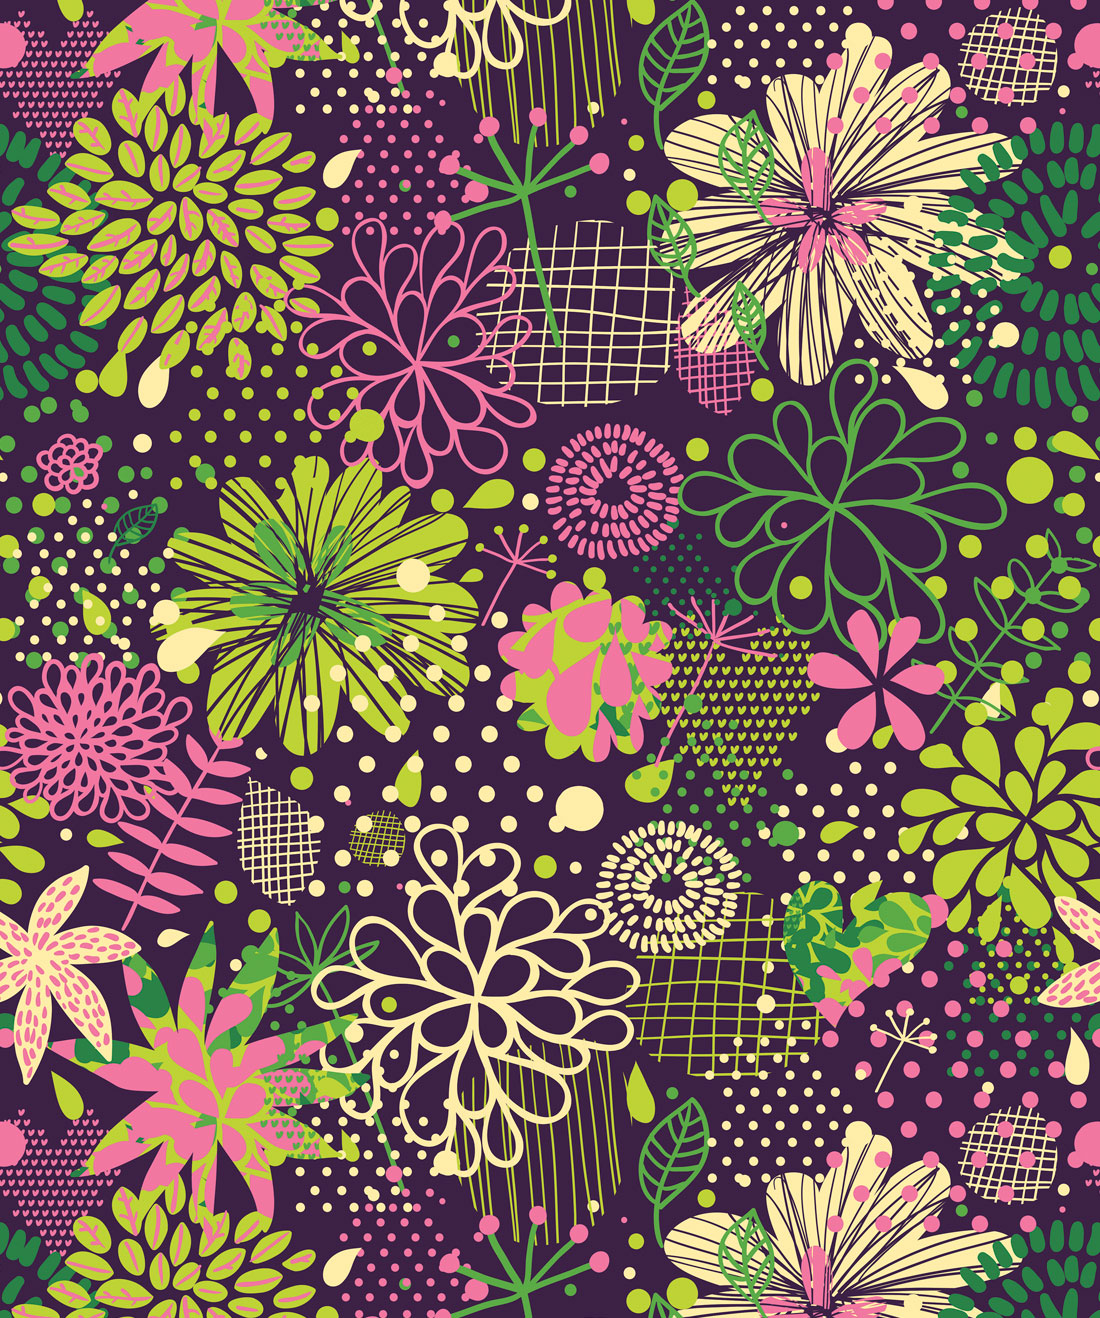 Neon Flowers Wallpaper